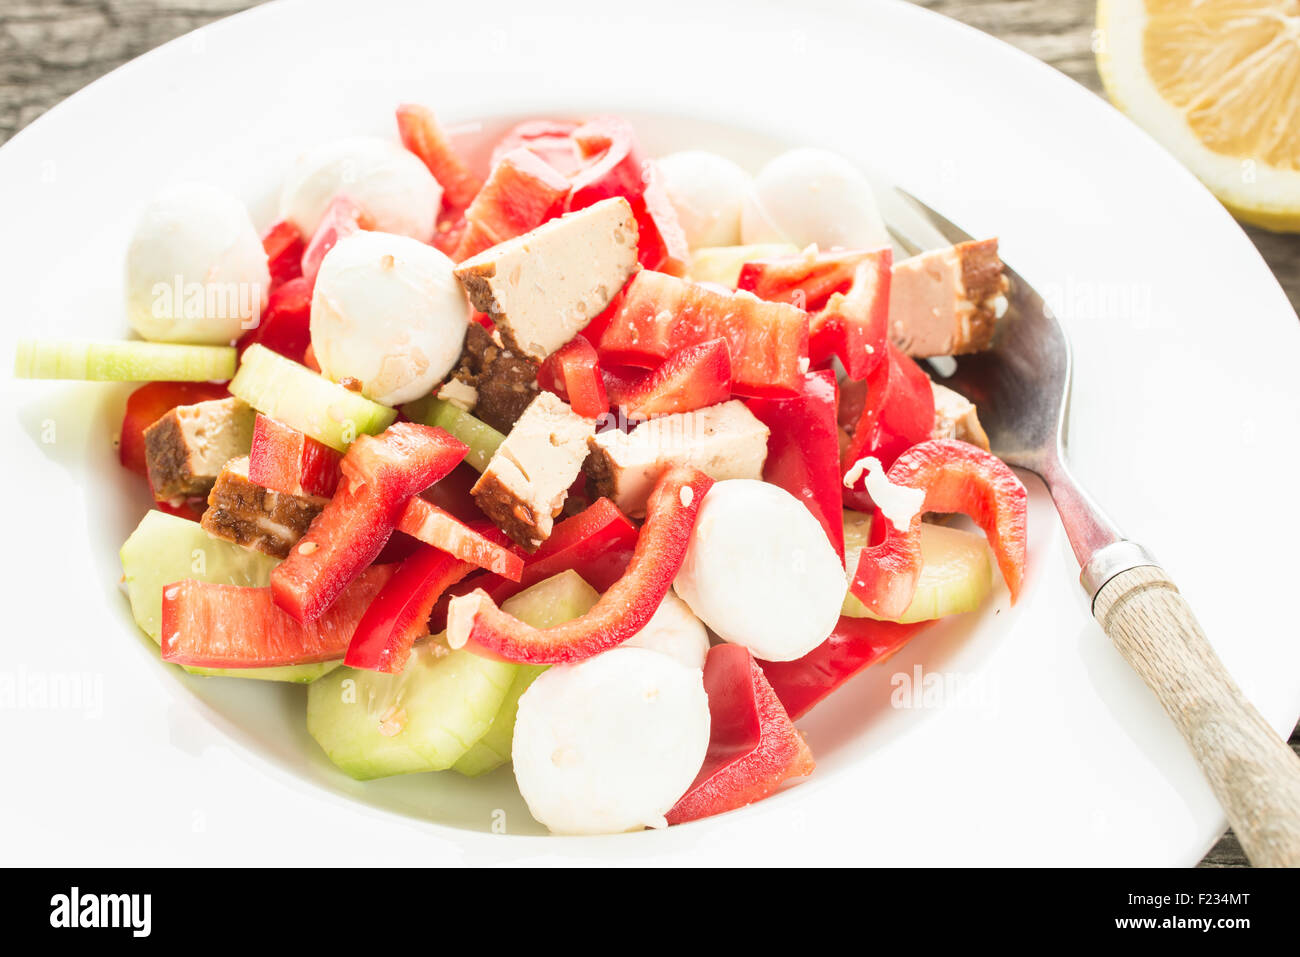 Salad with tofu and vegetables on a plate with fork - Stock Image